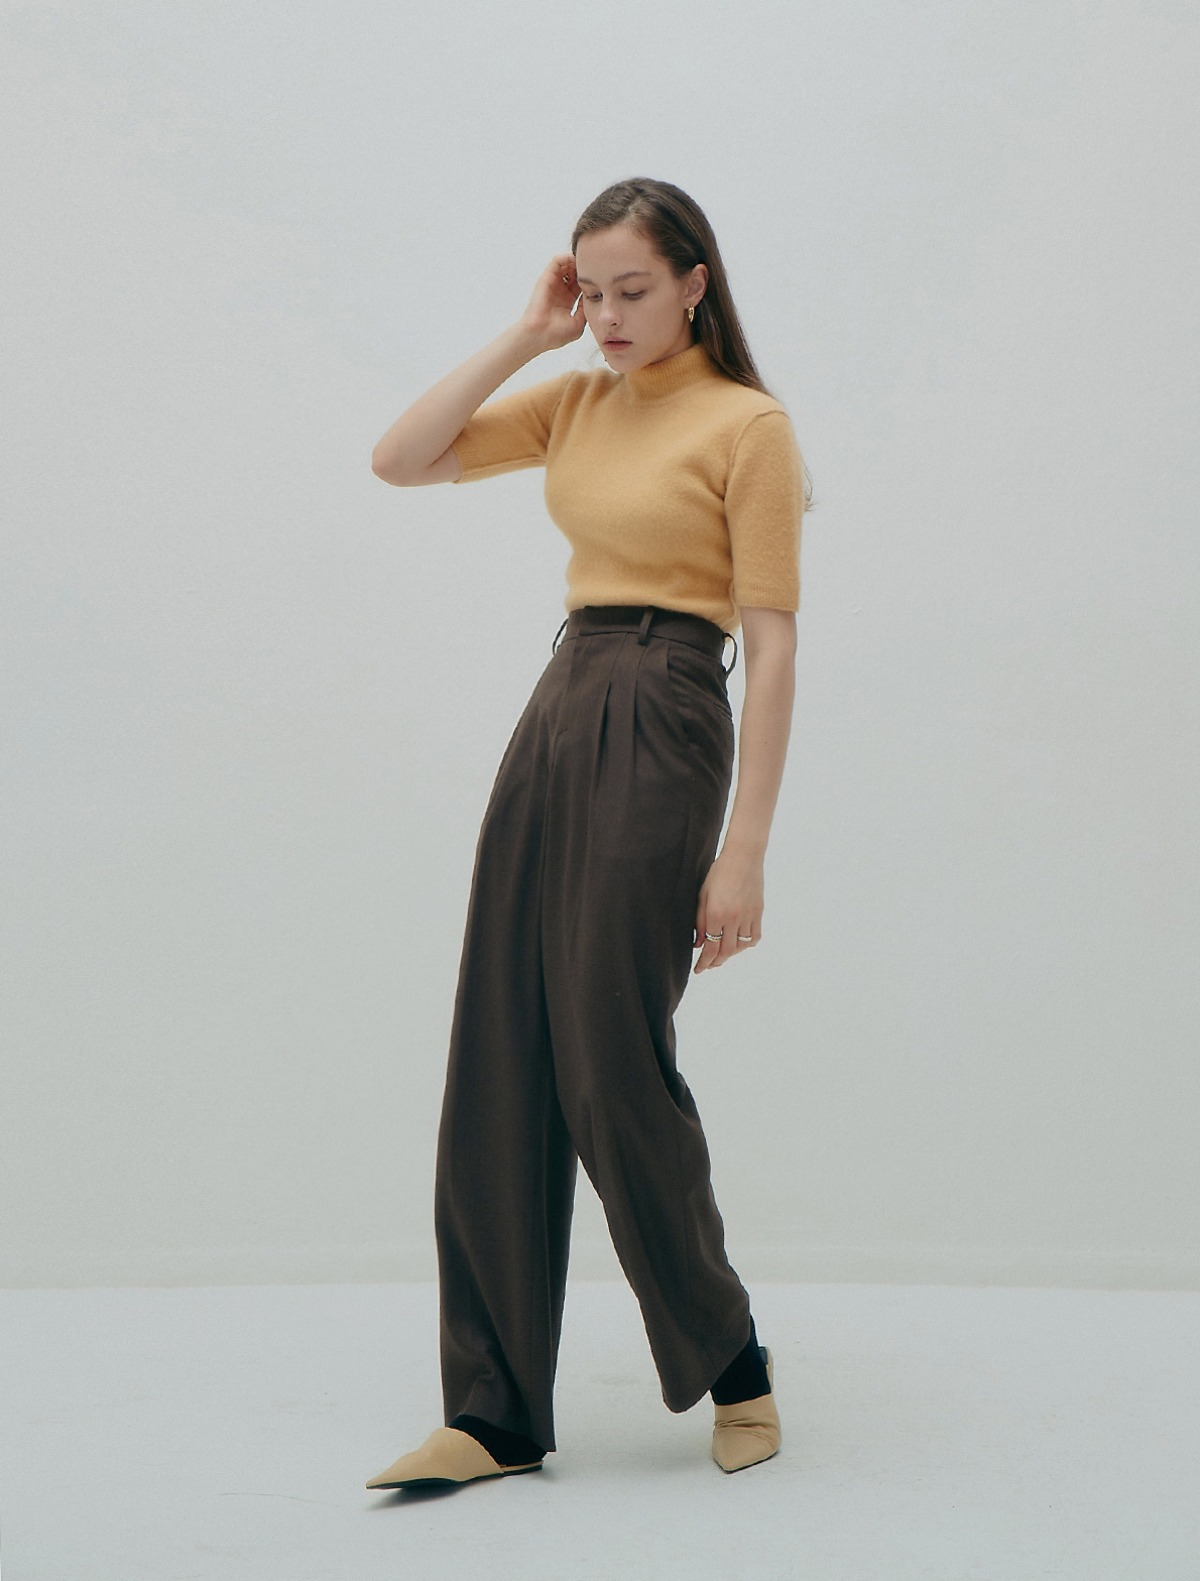 3rd REORDER · 2 Pleats Wide-Leg Trousers (Khaki/Brown)